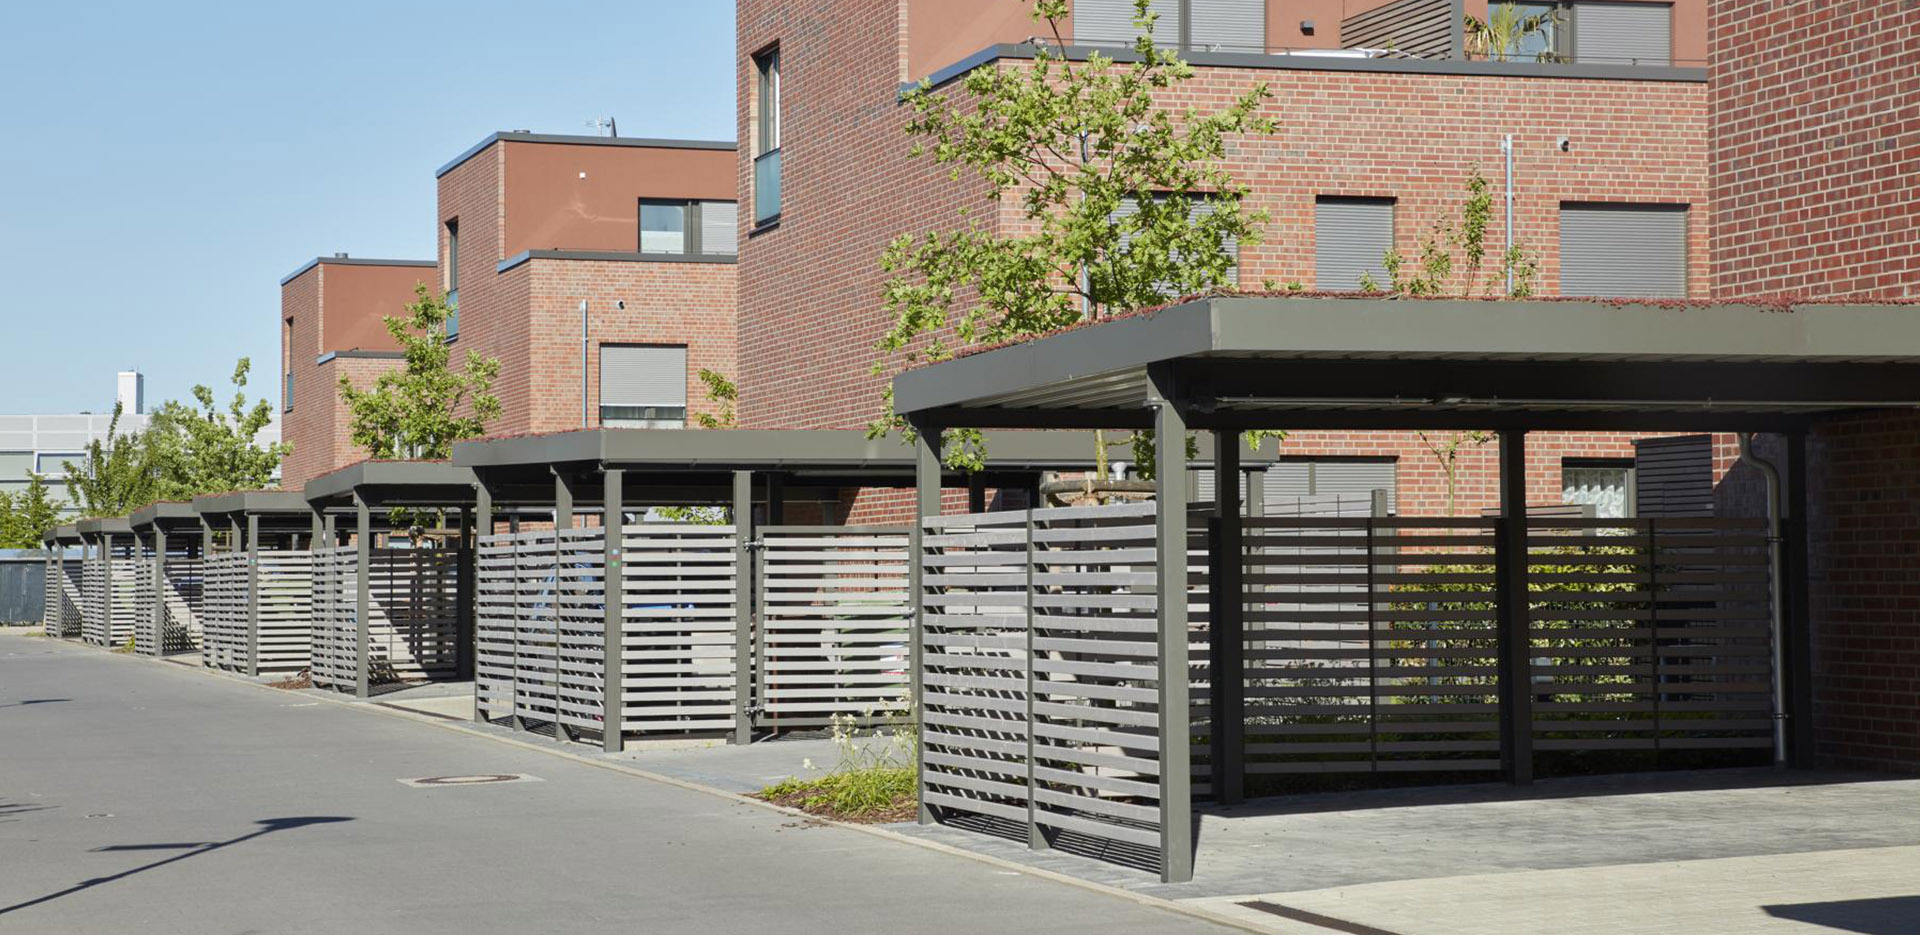 Carportanlage-Hannover-projekt-w References